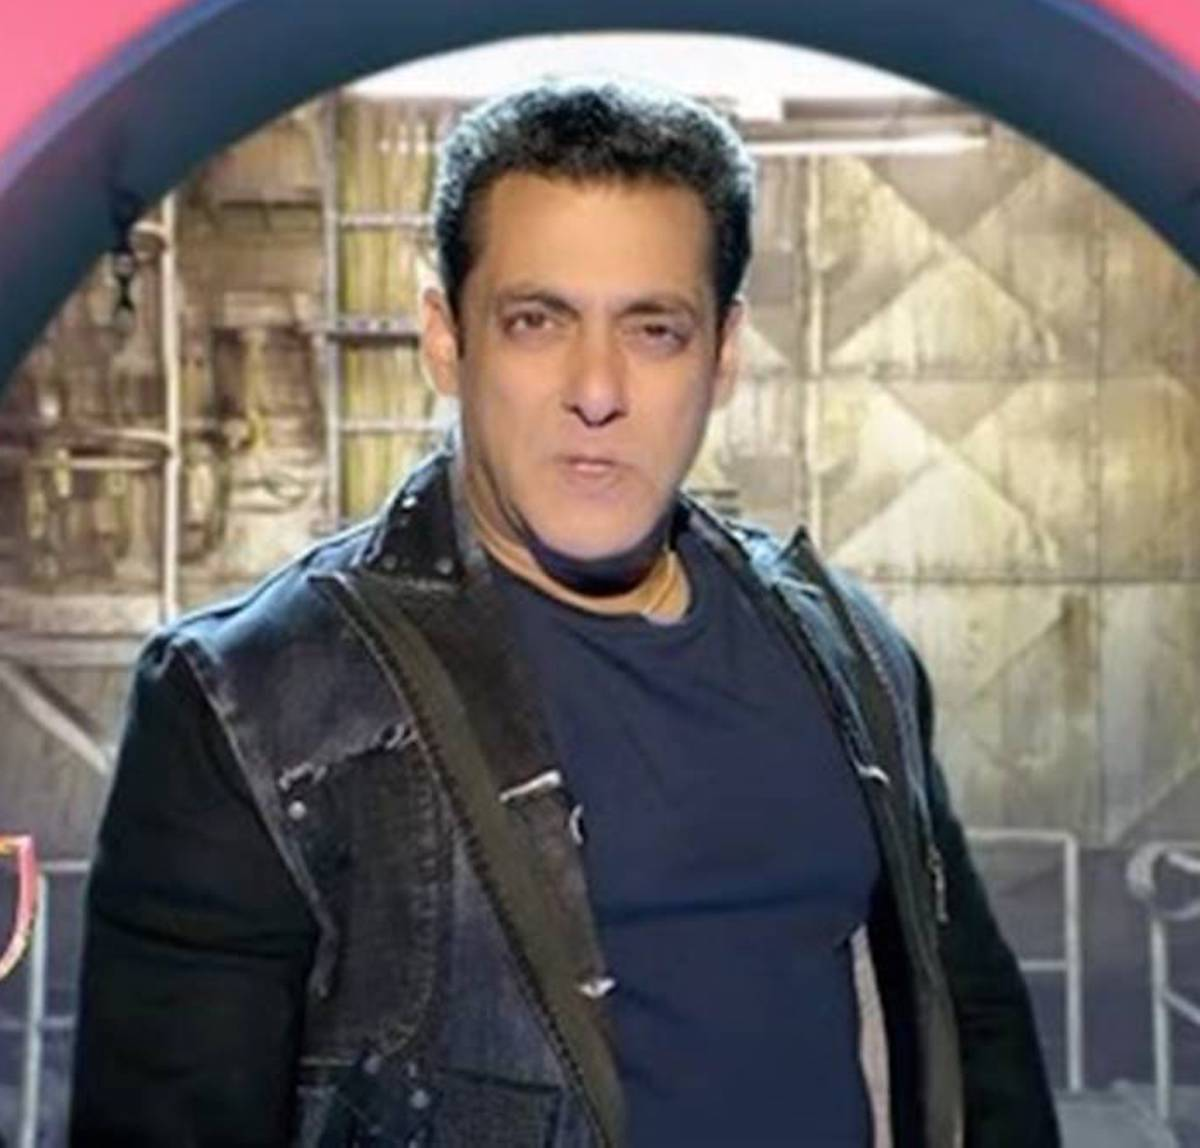 Bigg Boss 14 Inside house photos LEAKED: The new improved house of Salman Khan hosted show leaves fans excited